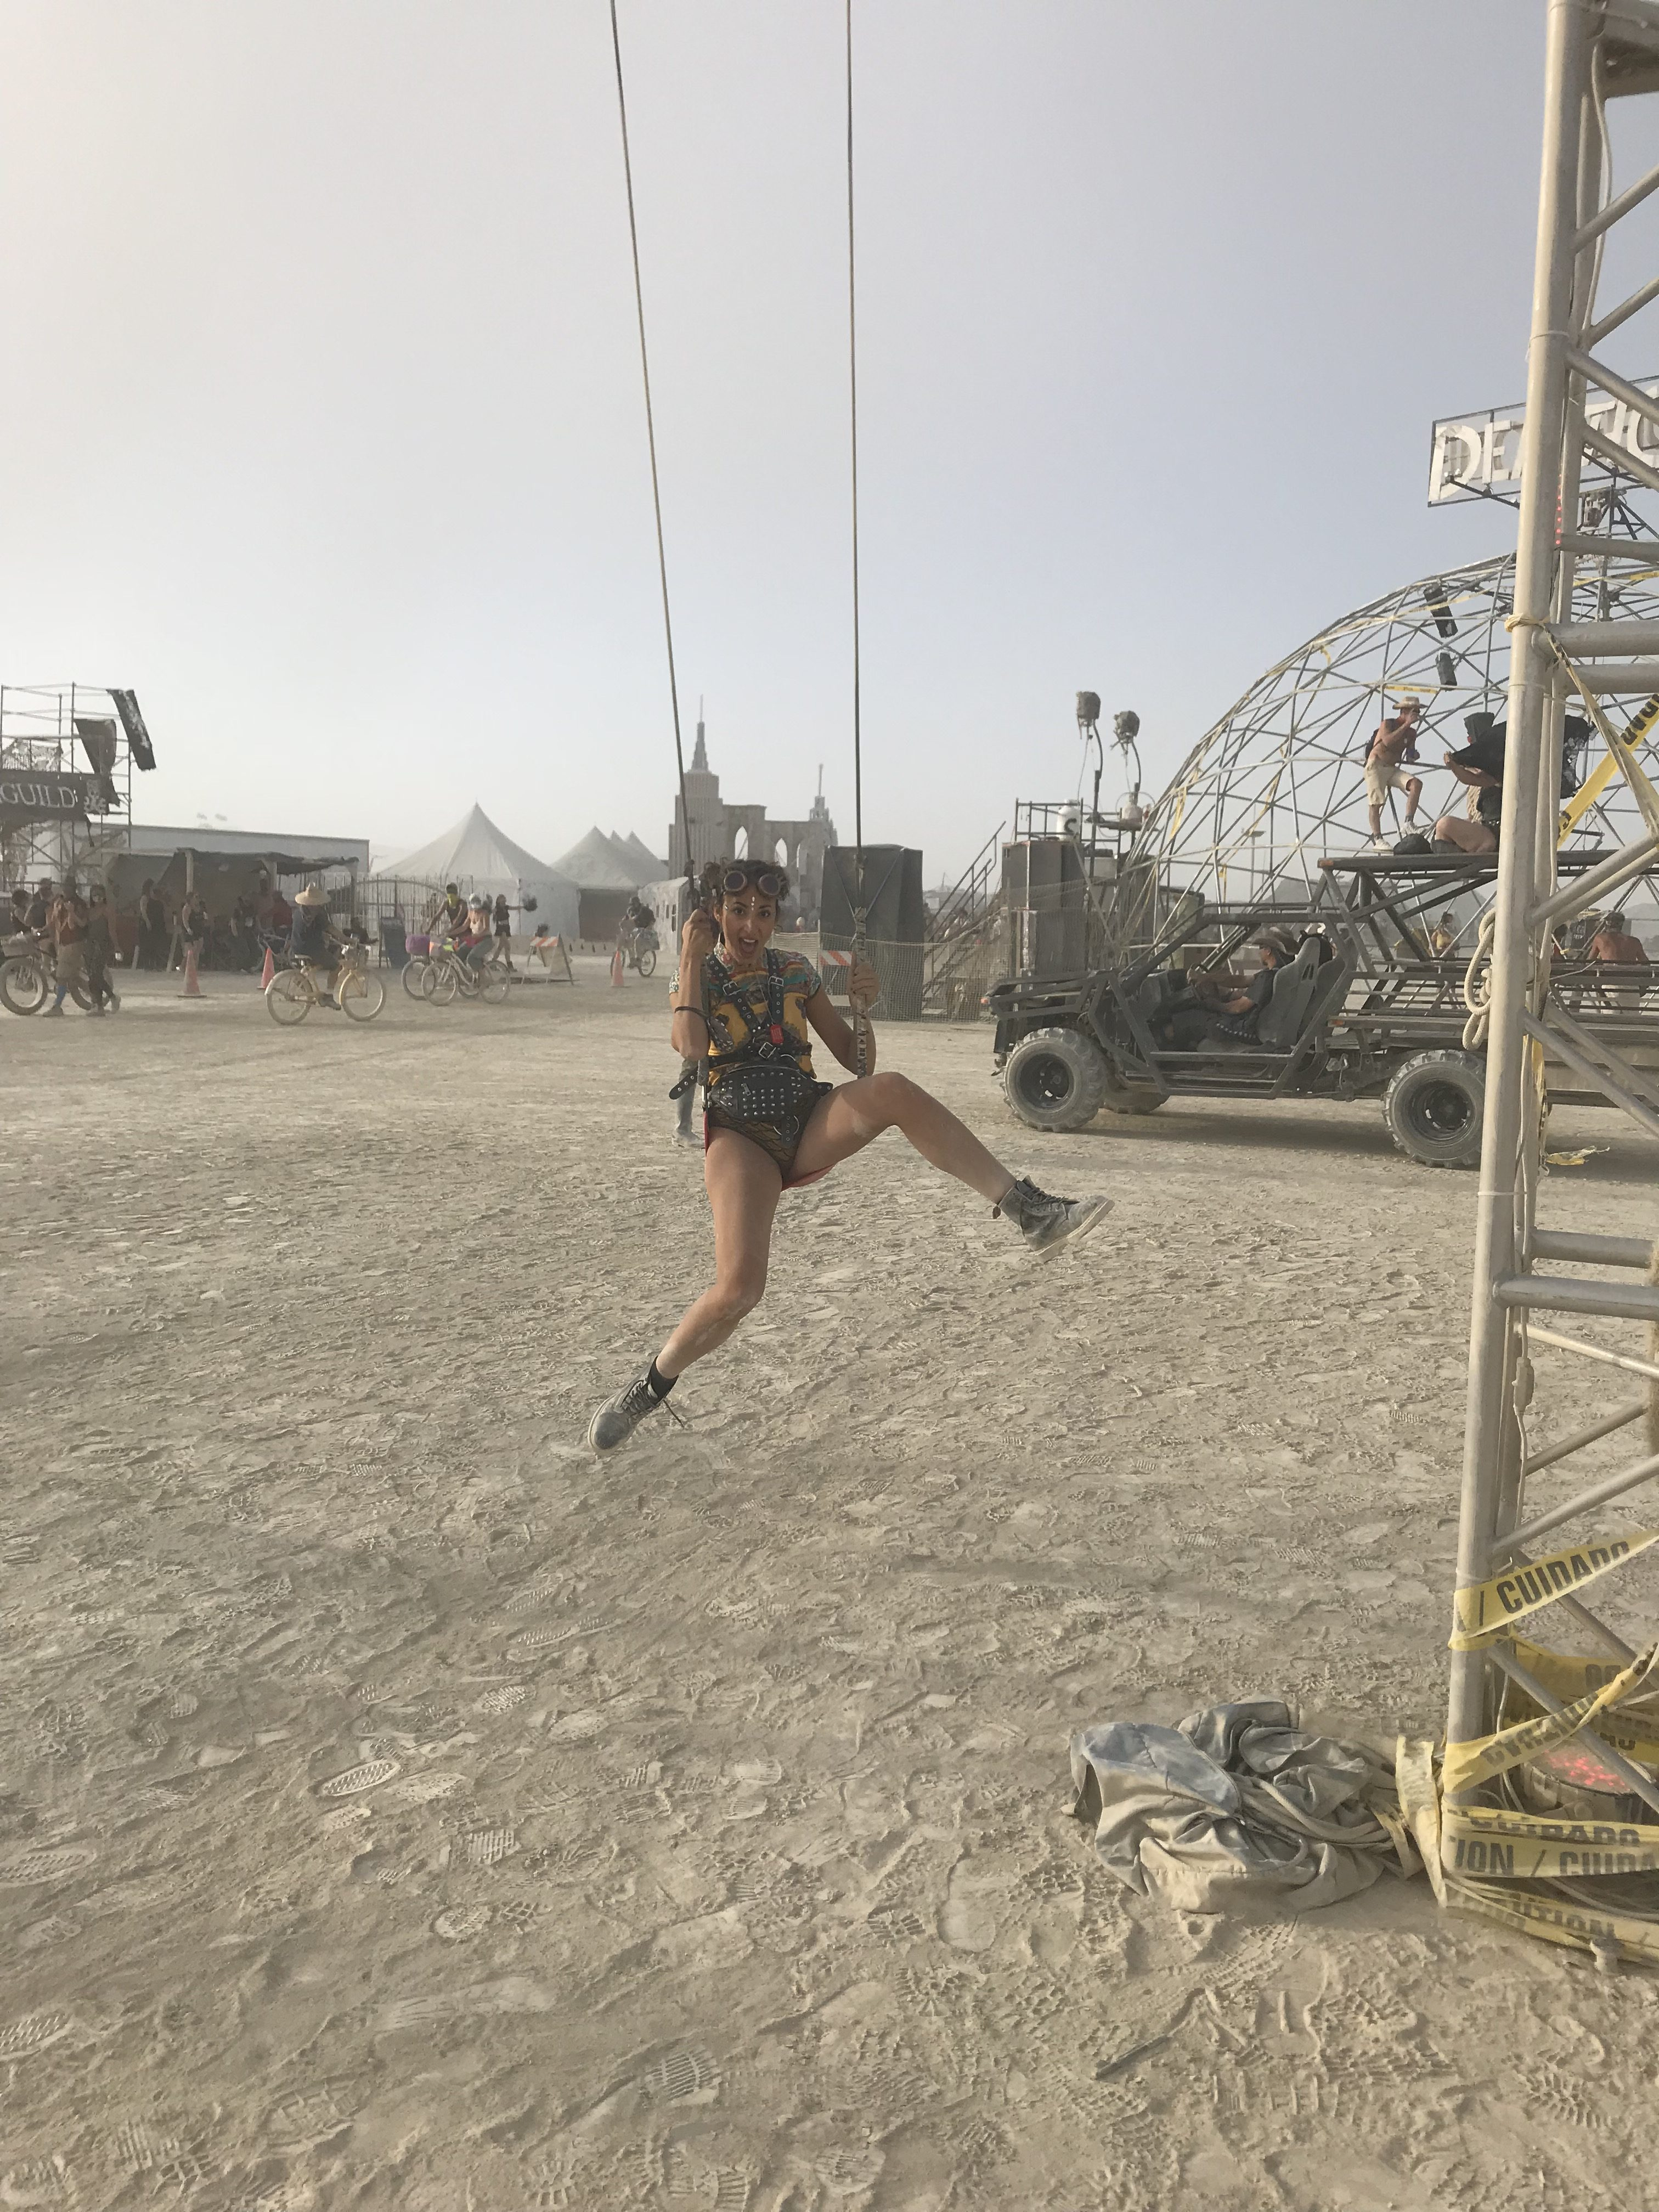 Burning Man 2018: The Festival's Brutal Conditions, and How To Survive